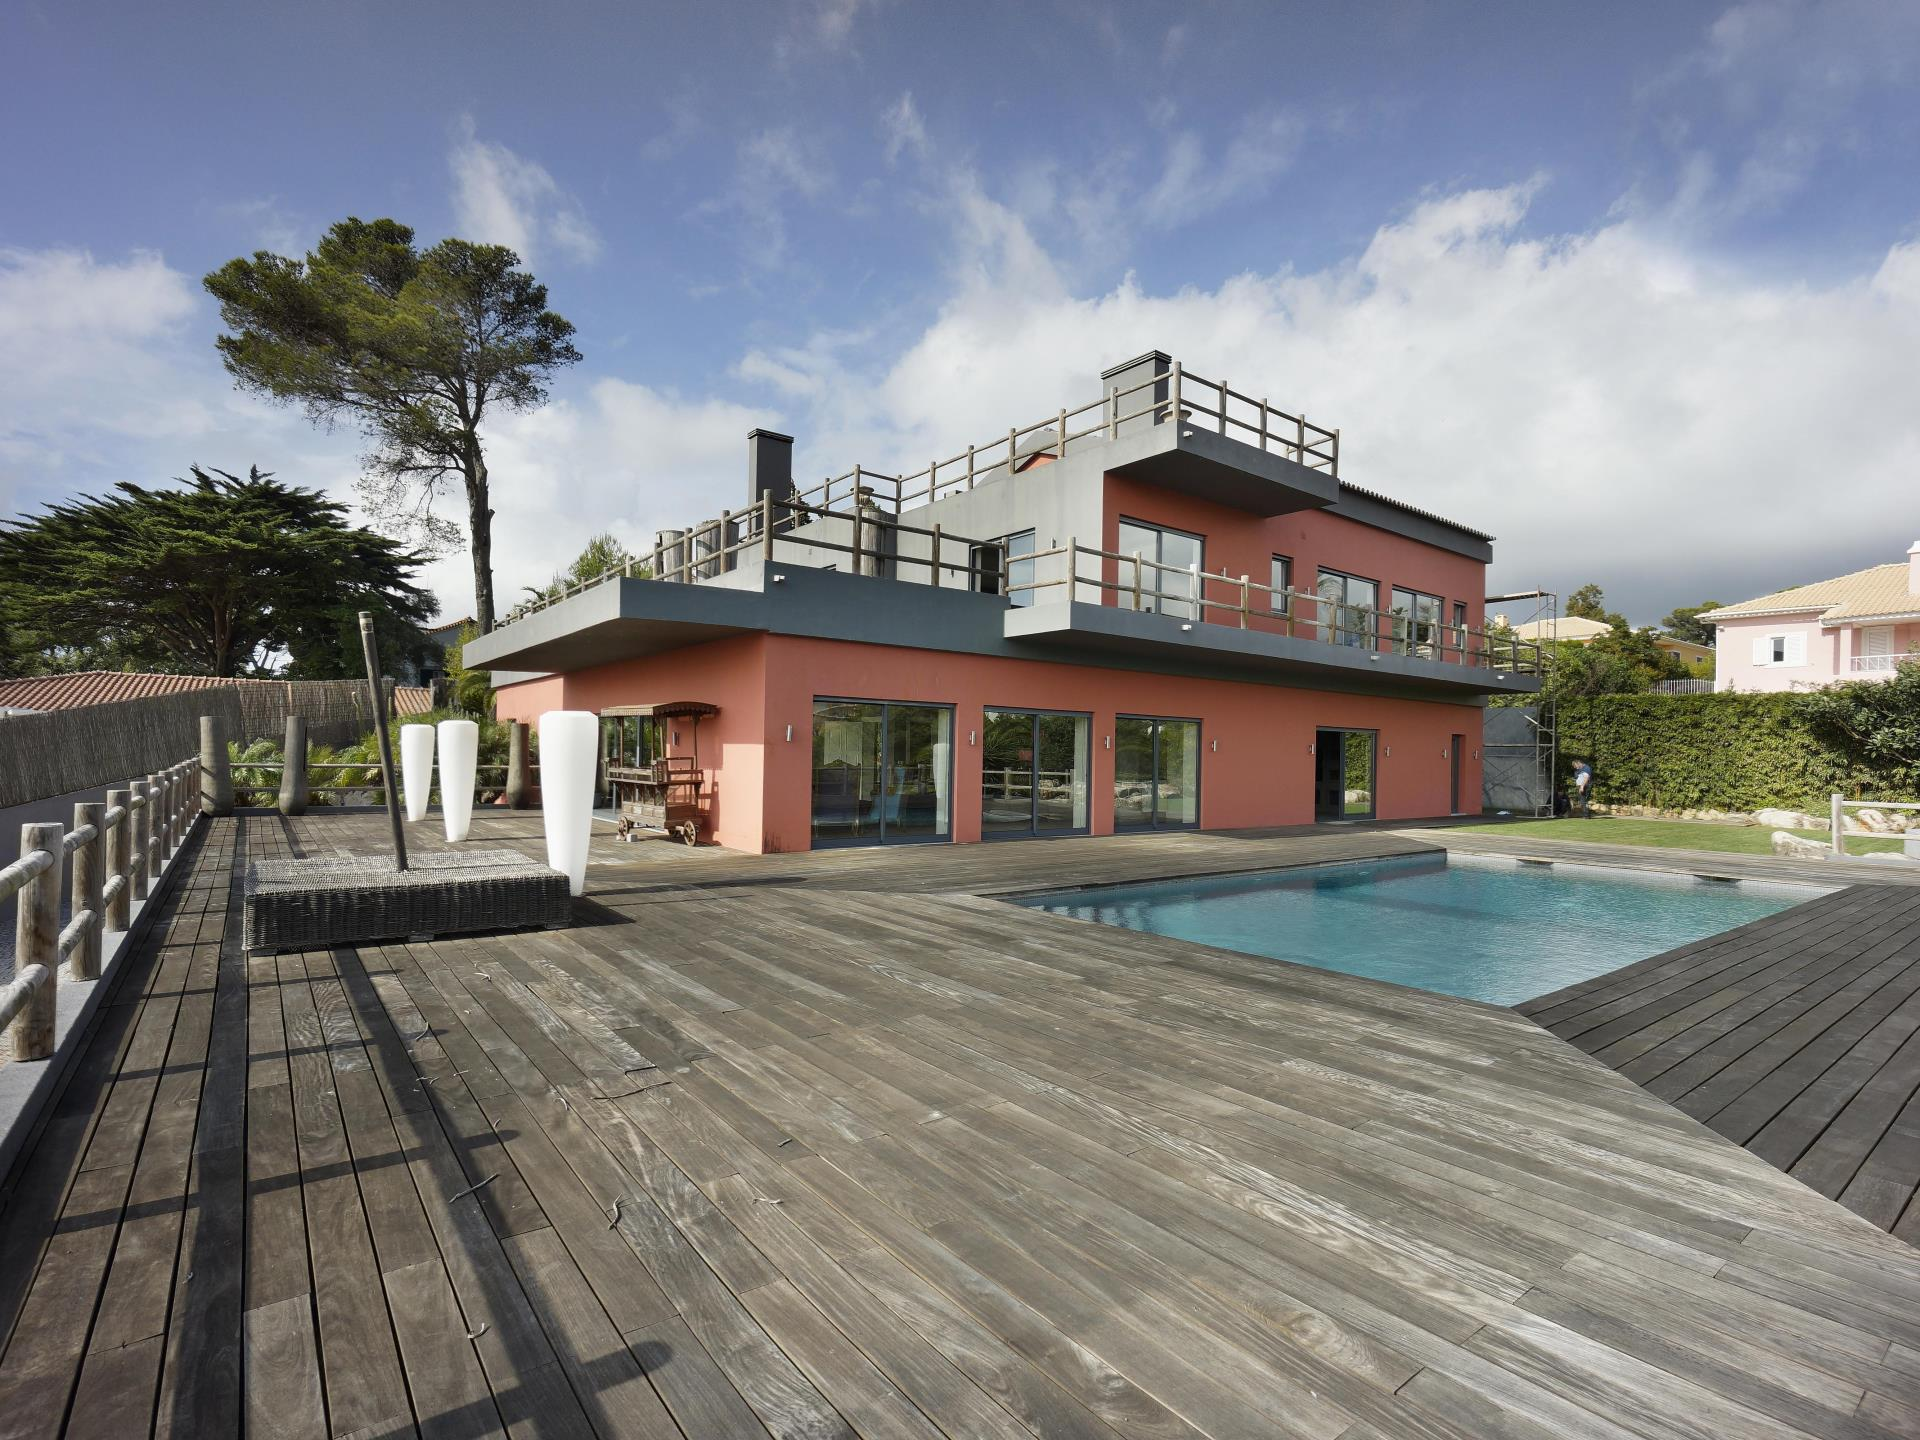 Casa Unifamiliar por un Venta en House, 5 bedrooms, for Sale Cascais, Cascais, Lisboa Portugal